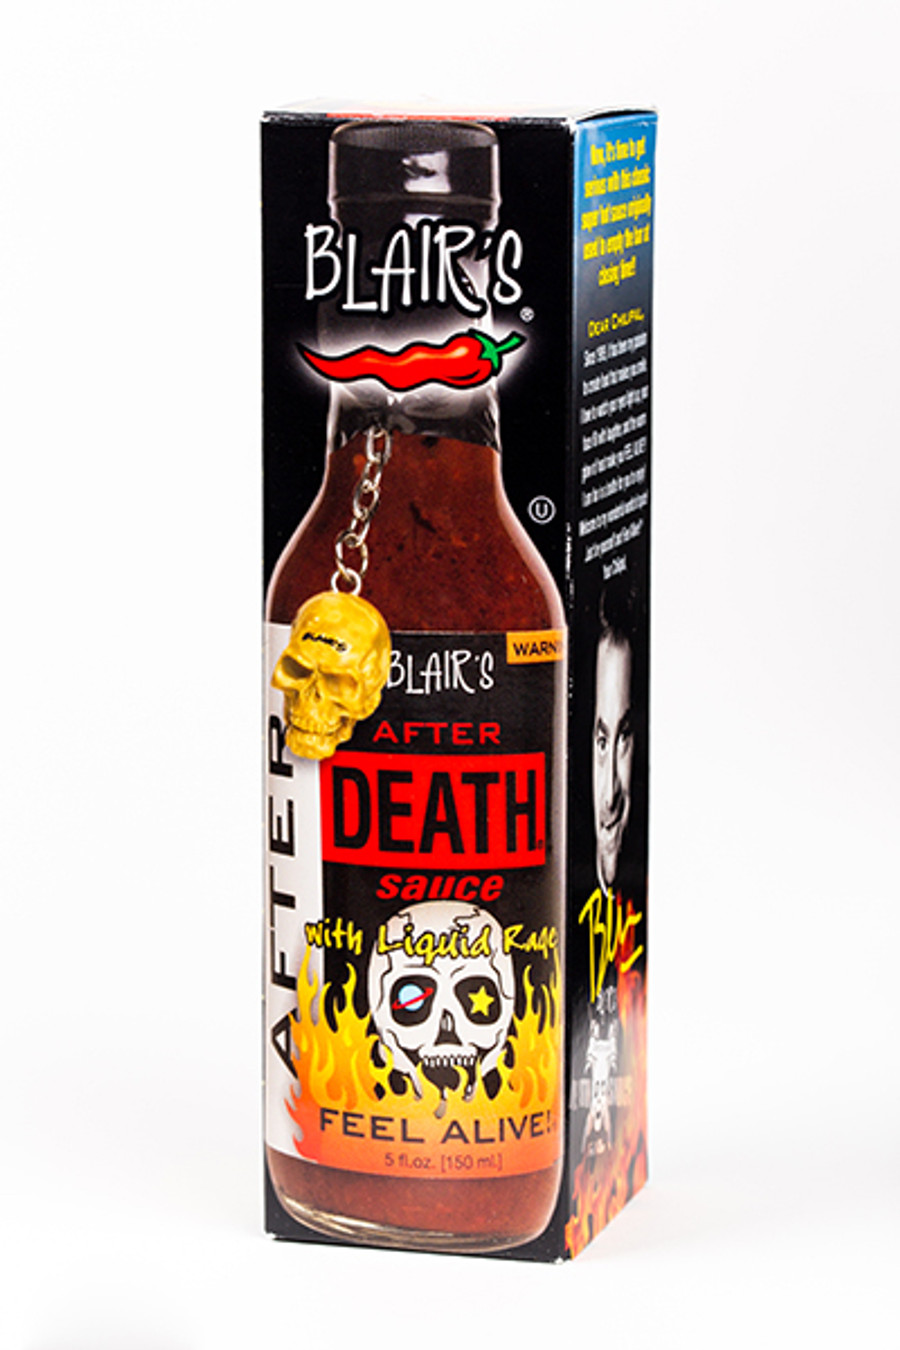 Feel Alive with Blair's After Death Sauce